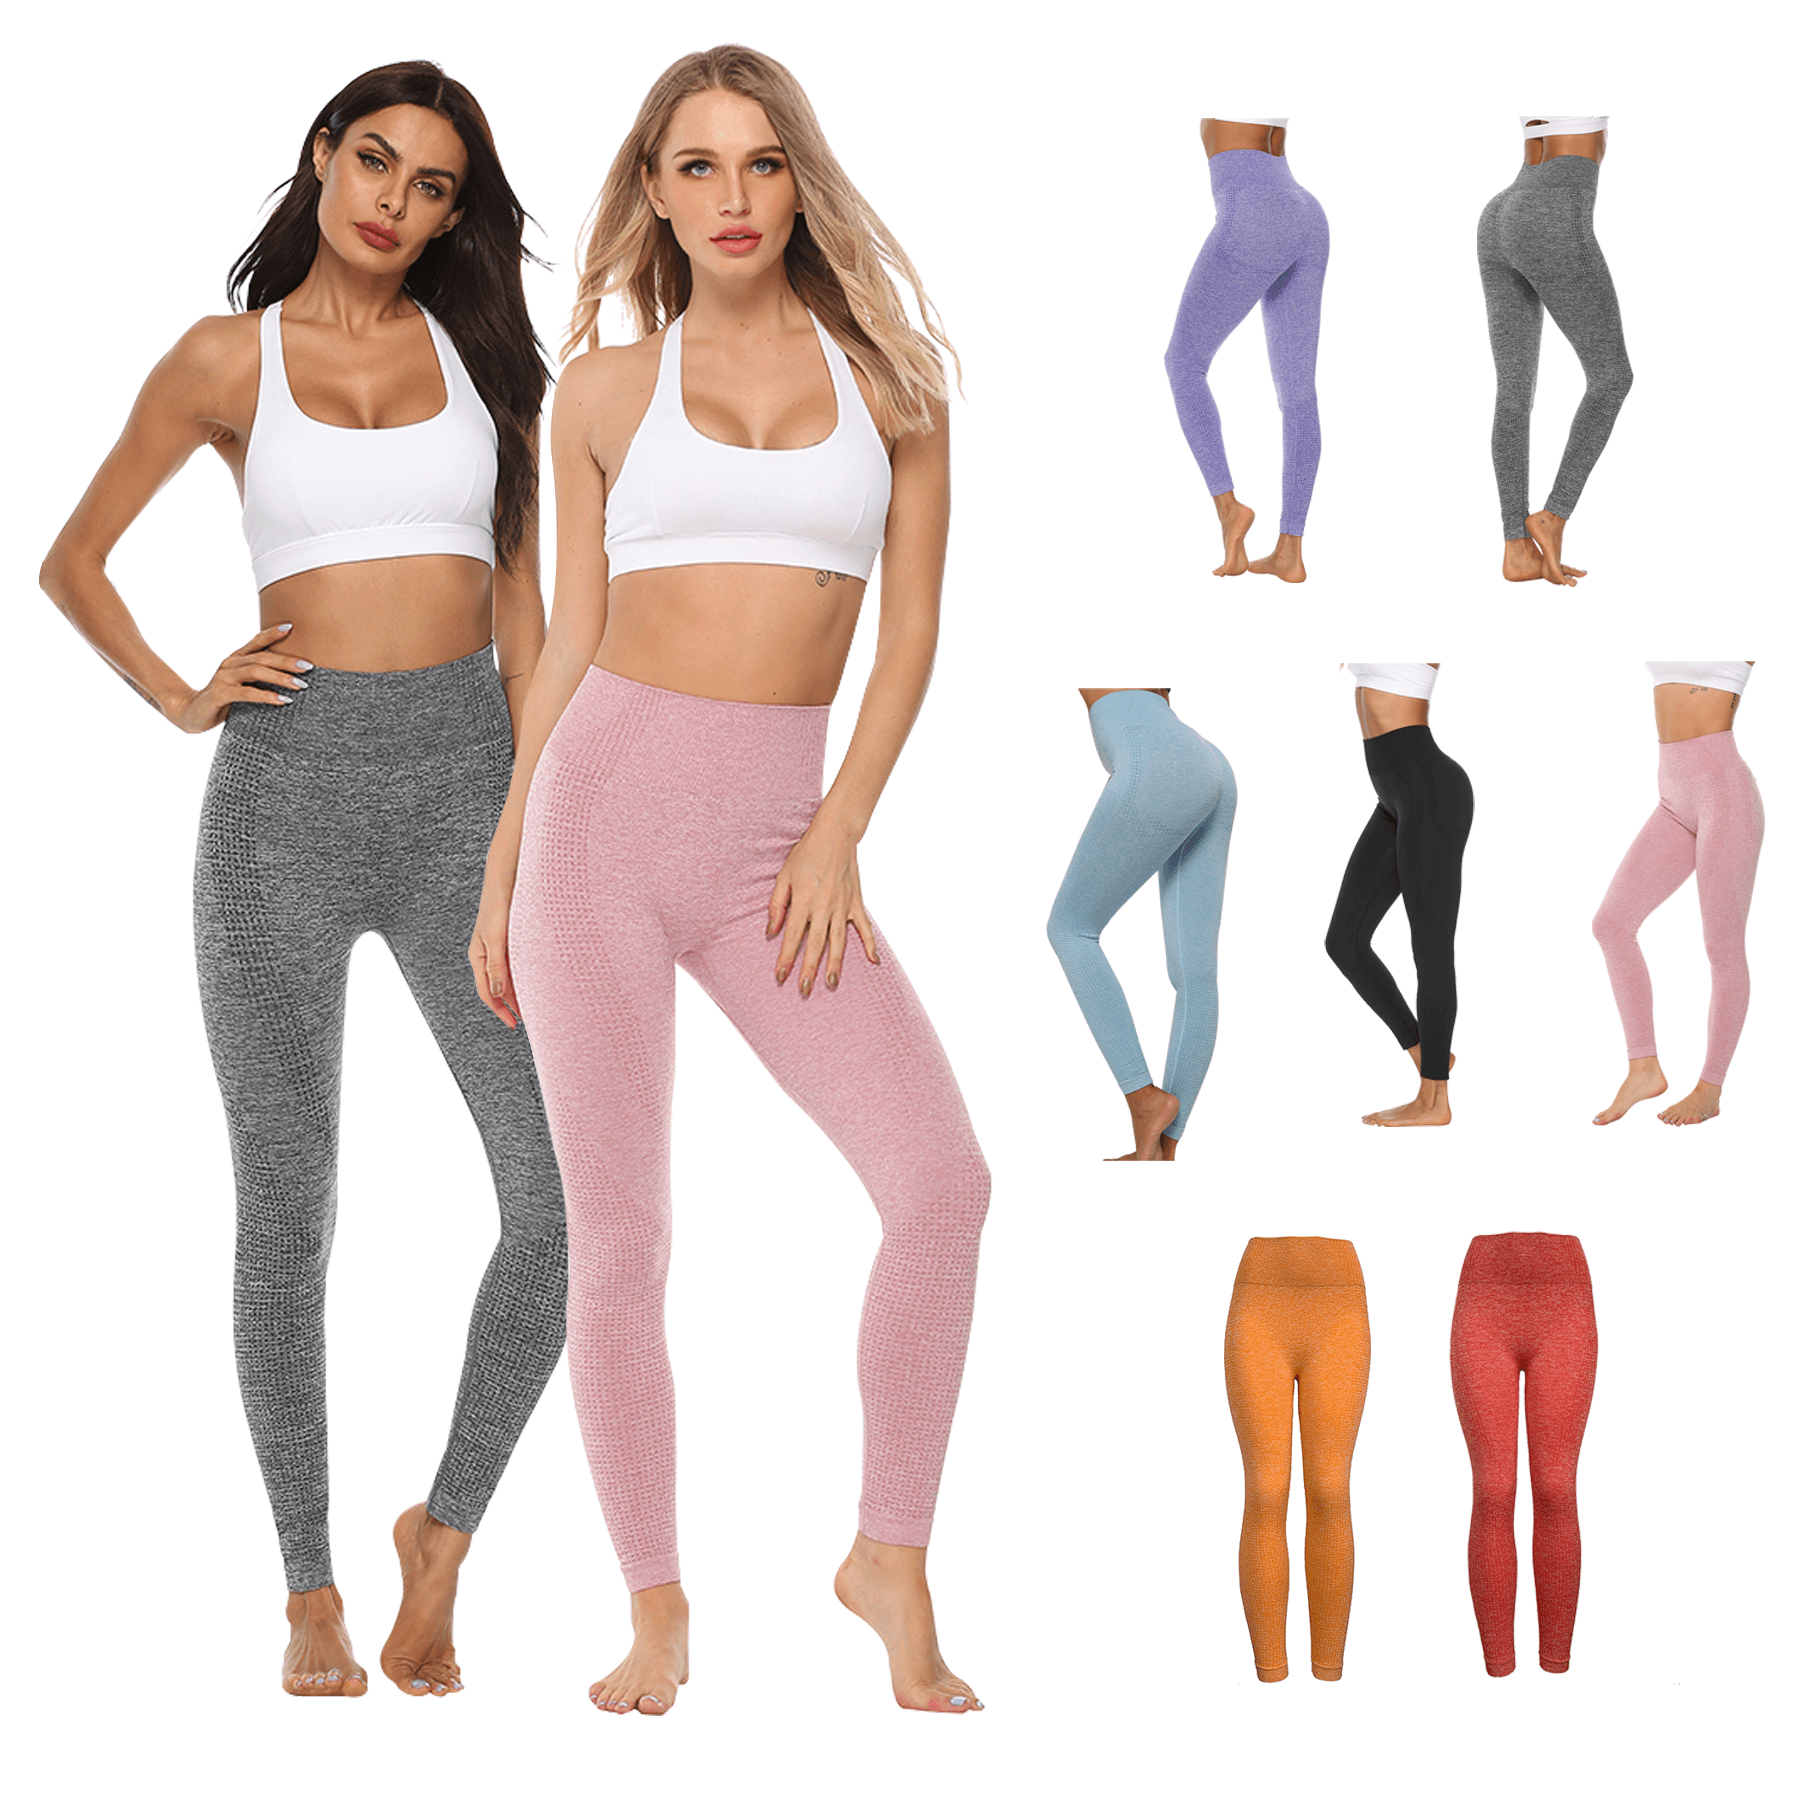 Women's Fitness Workout Pants - Women's Fitness Workout Pants